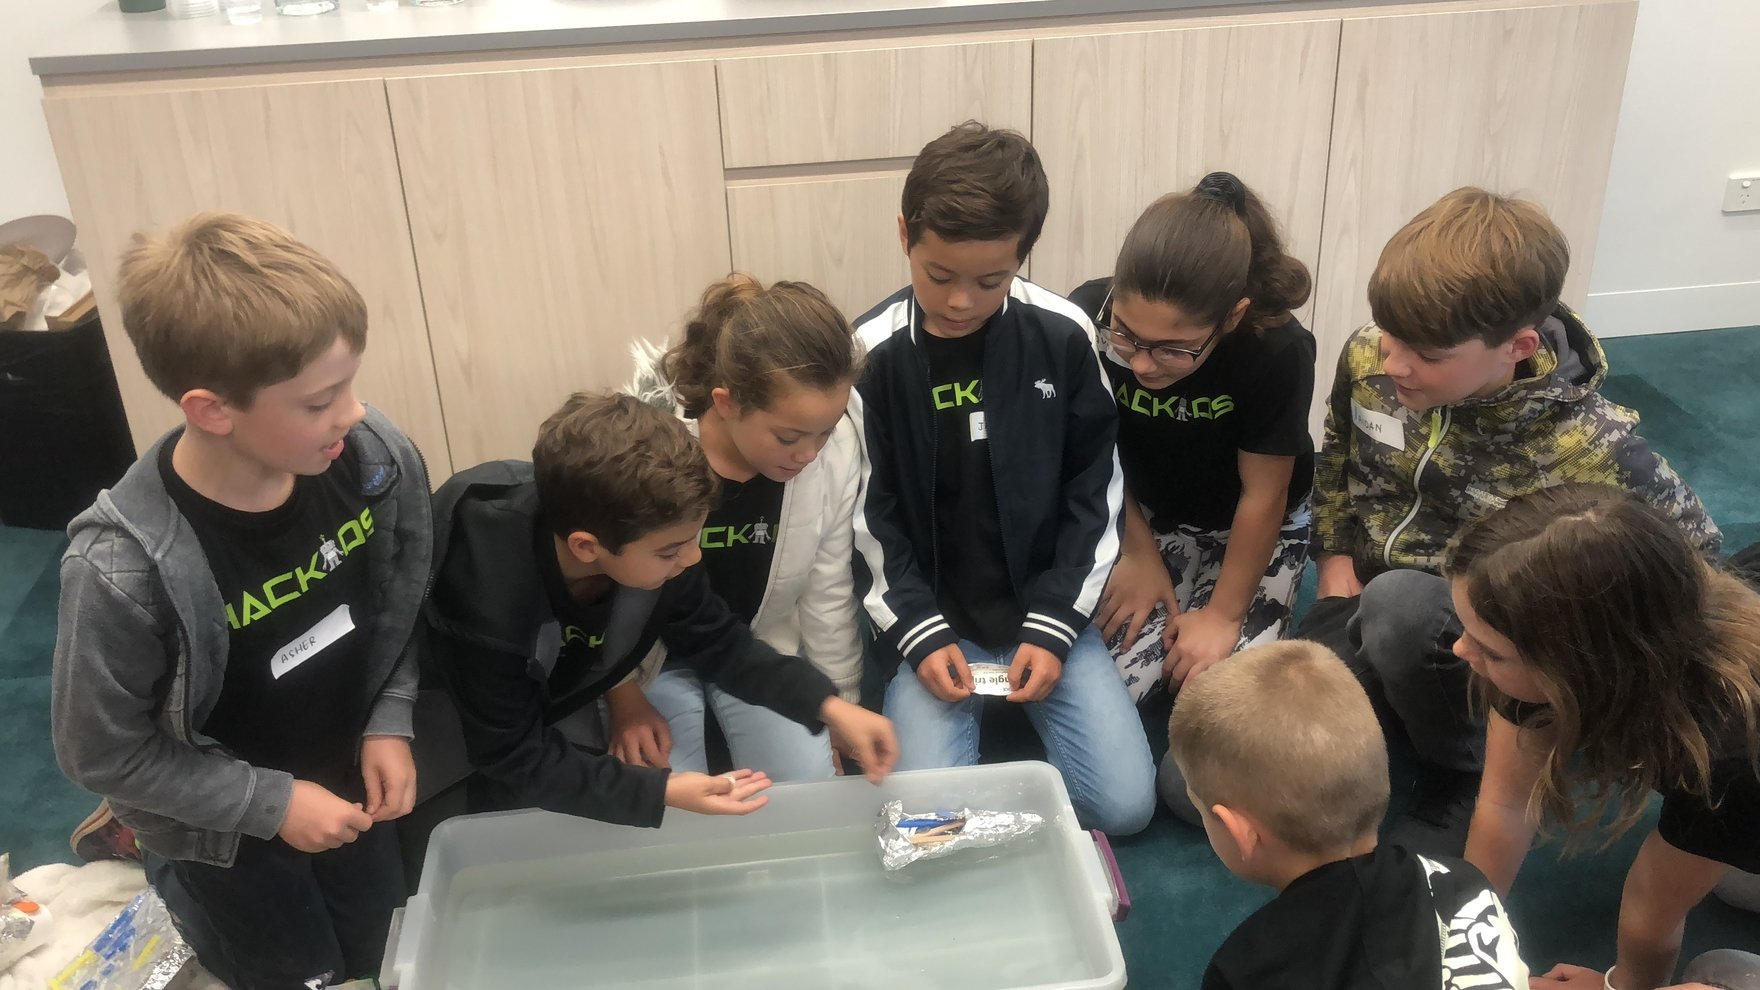 Group of children working together